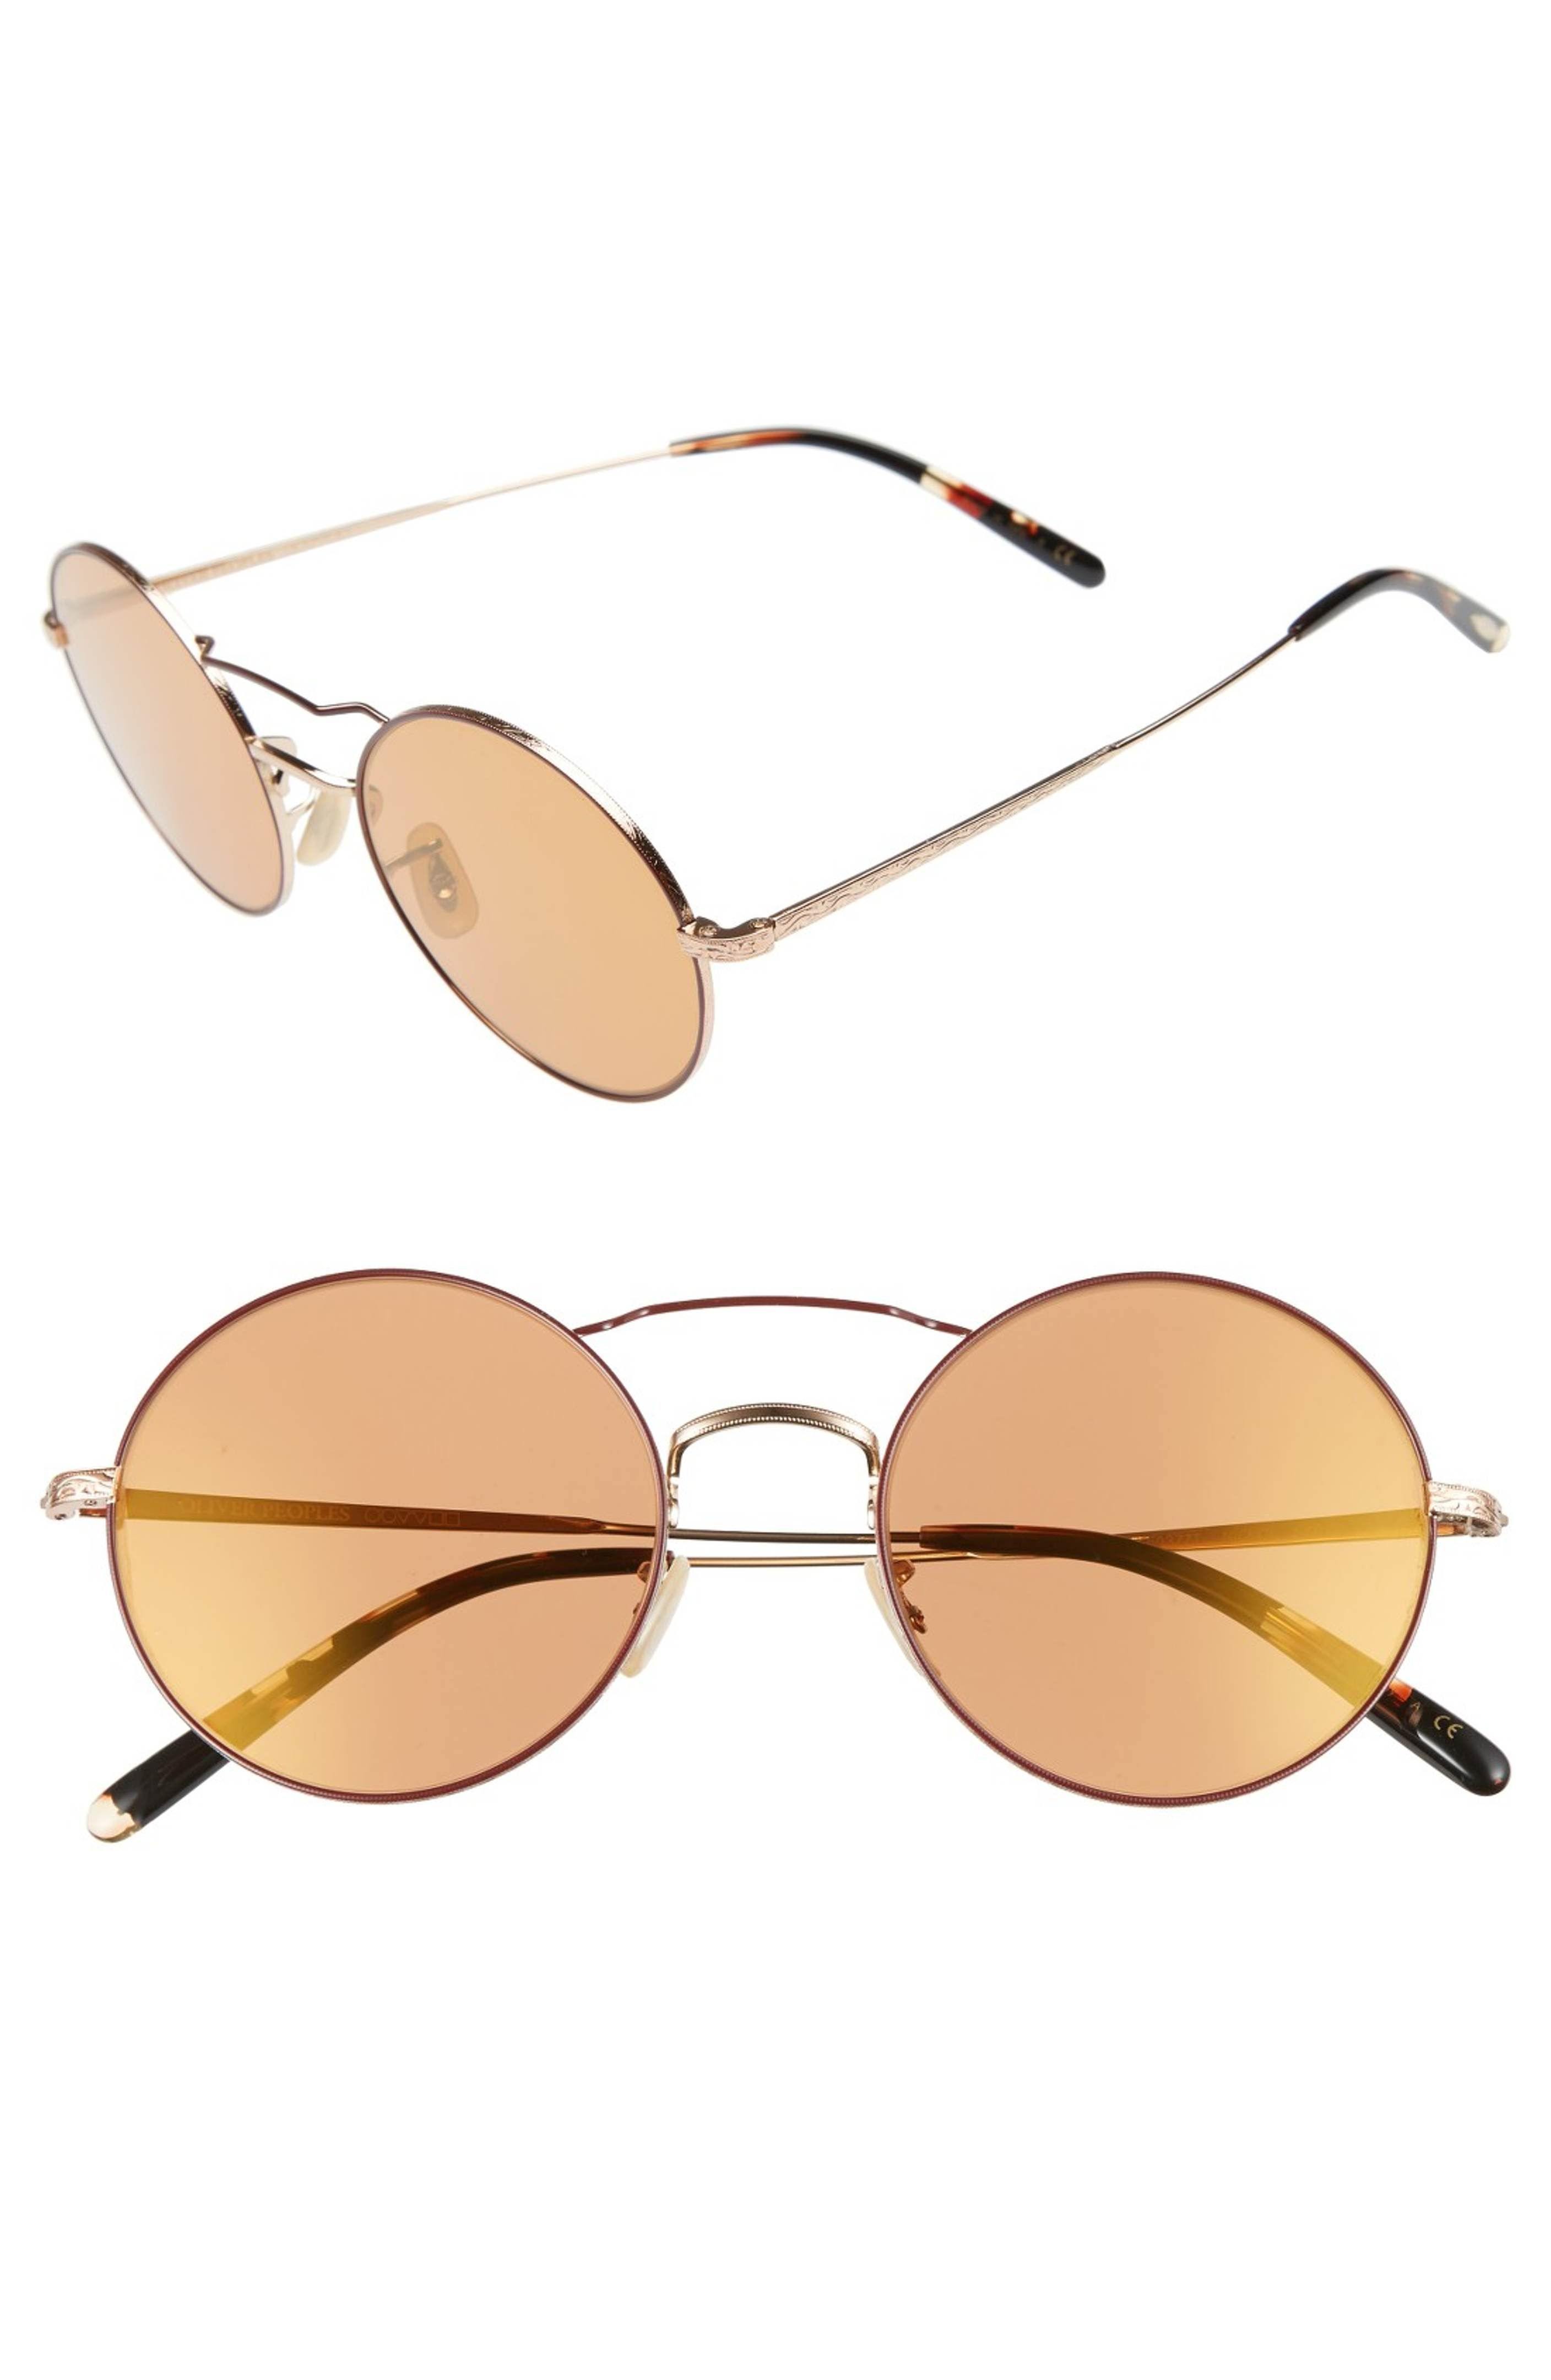 2087d7c85ed Main Image - Oliver Peoples Nickol 53mm Round Sunglasses